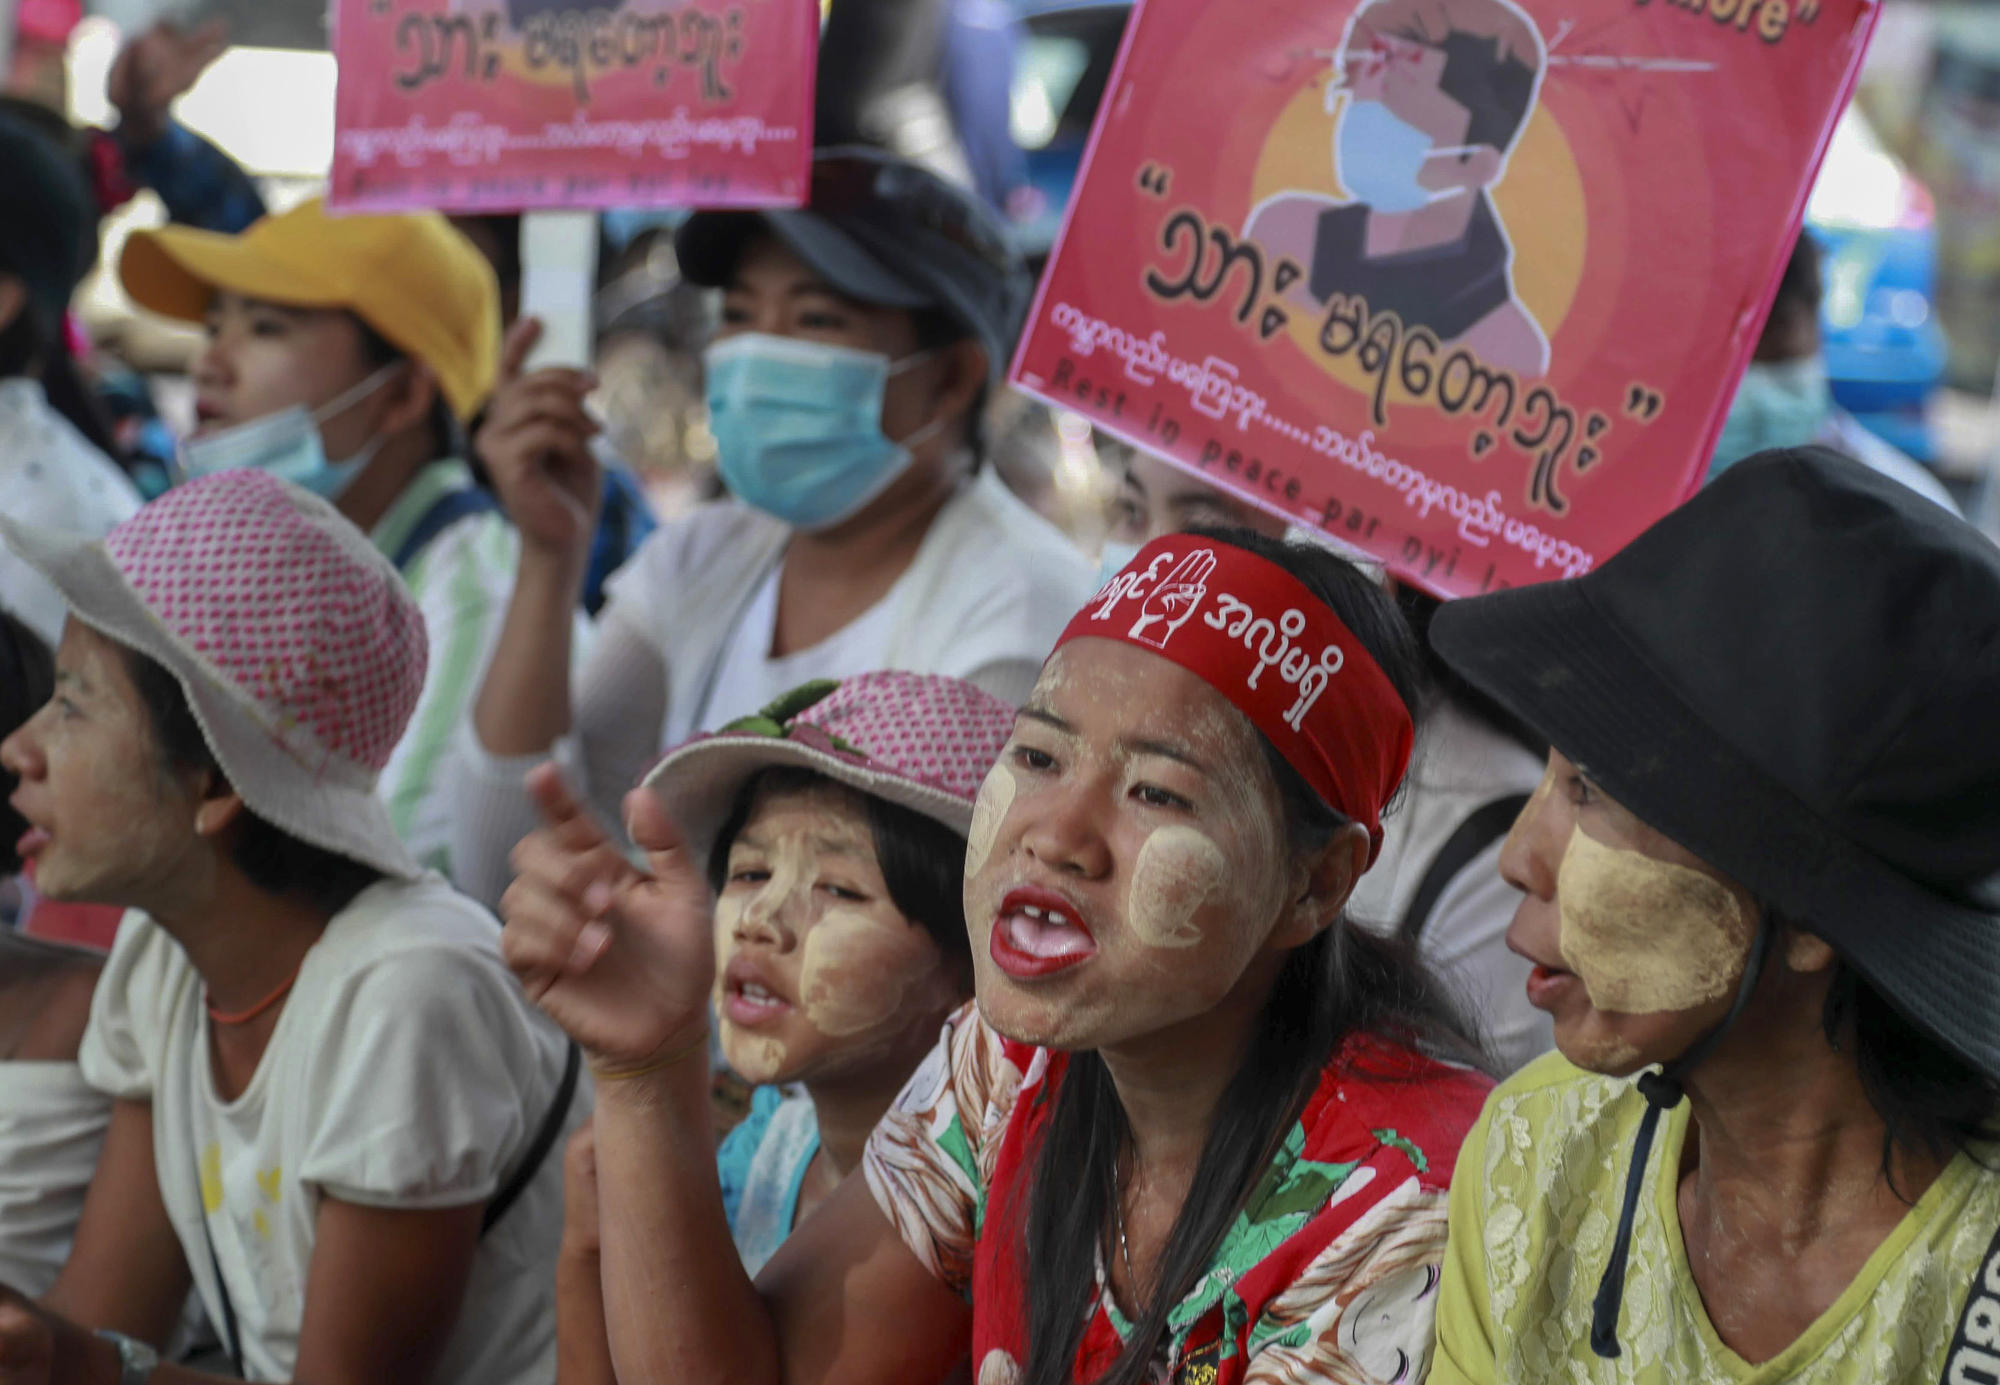 More Myanmar protests follow strike, foreign concerns